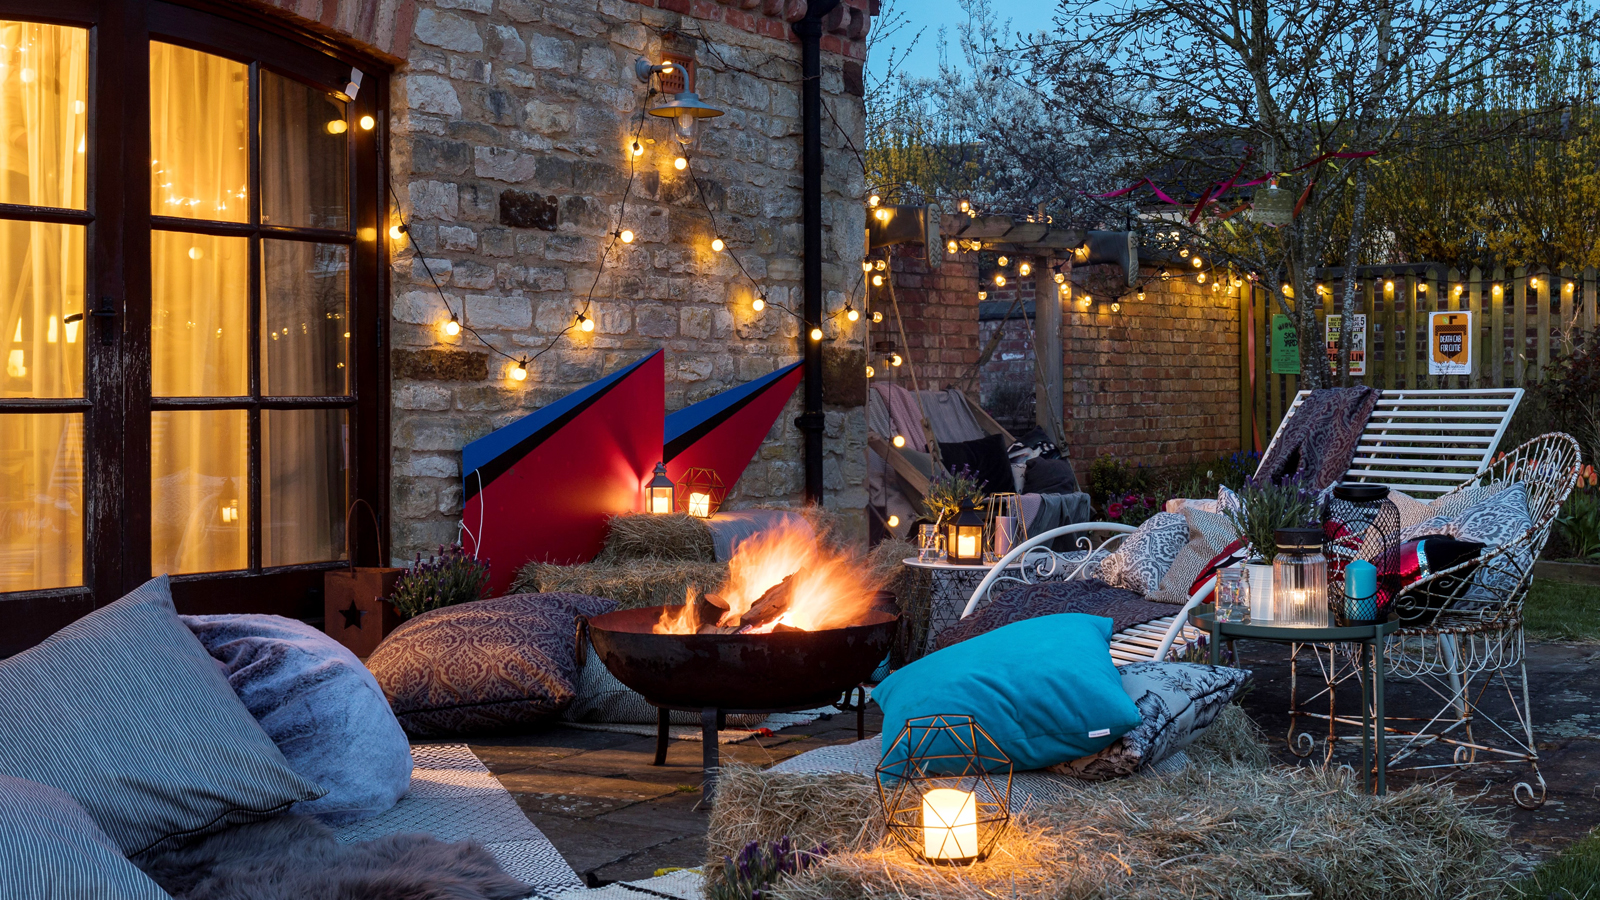 Jo Whiley's garden, decorated in festival style with a home made Ziggy Stardust lightning sign, fairy lights, a fire pit, and casual seating (PA/Hillarys Blinds)